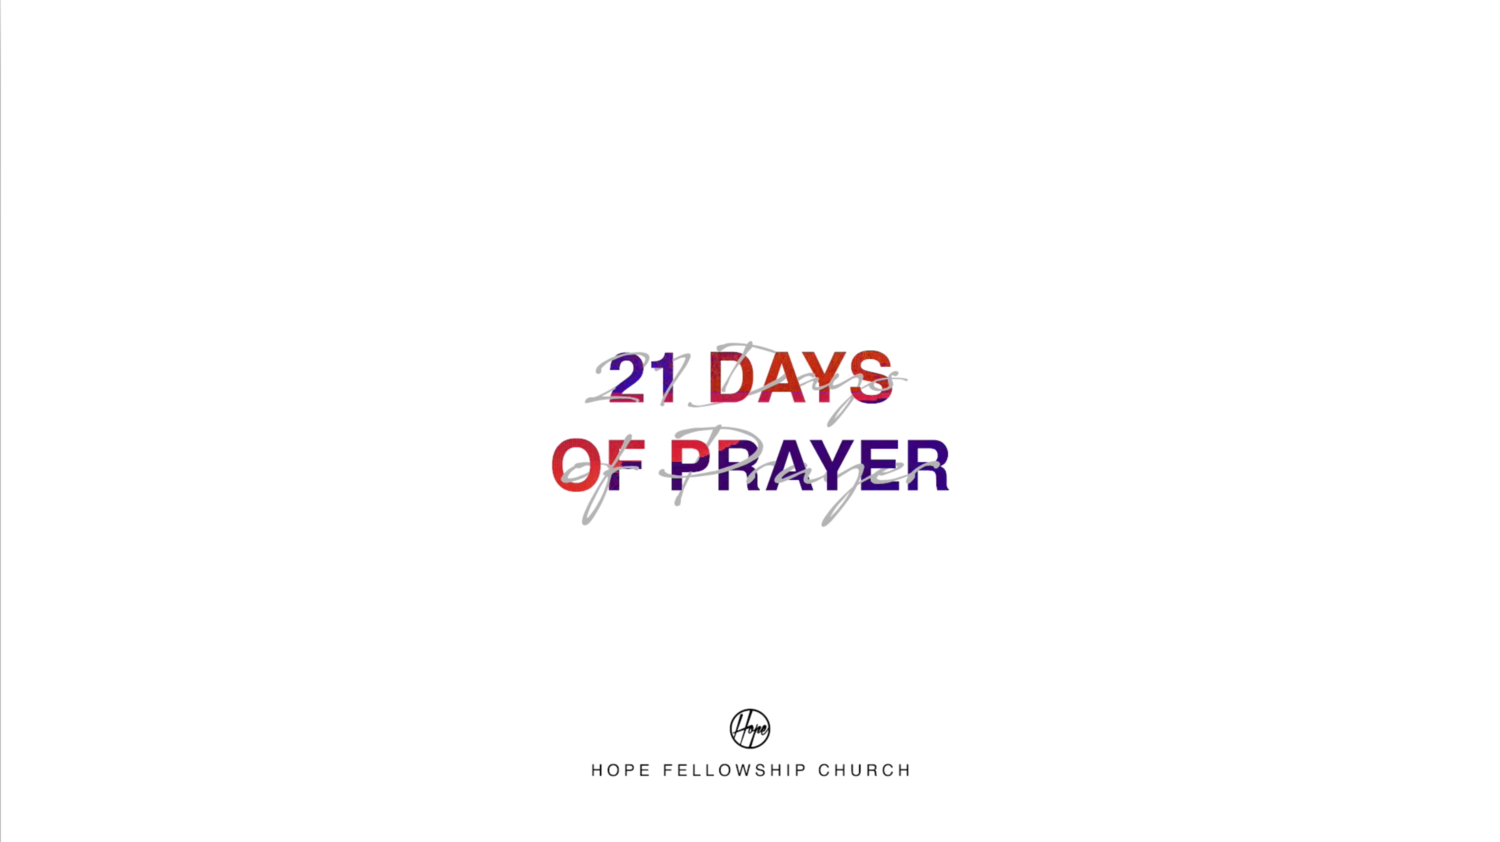 21 Days of Prayer Week 2